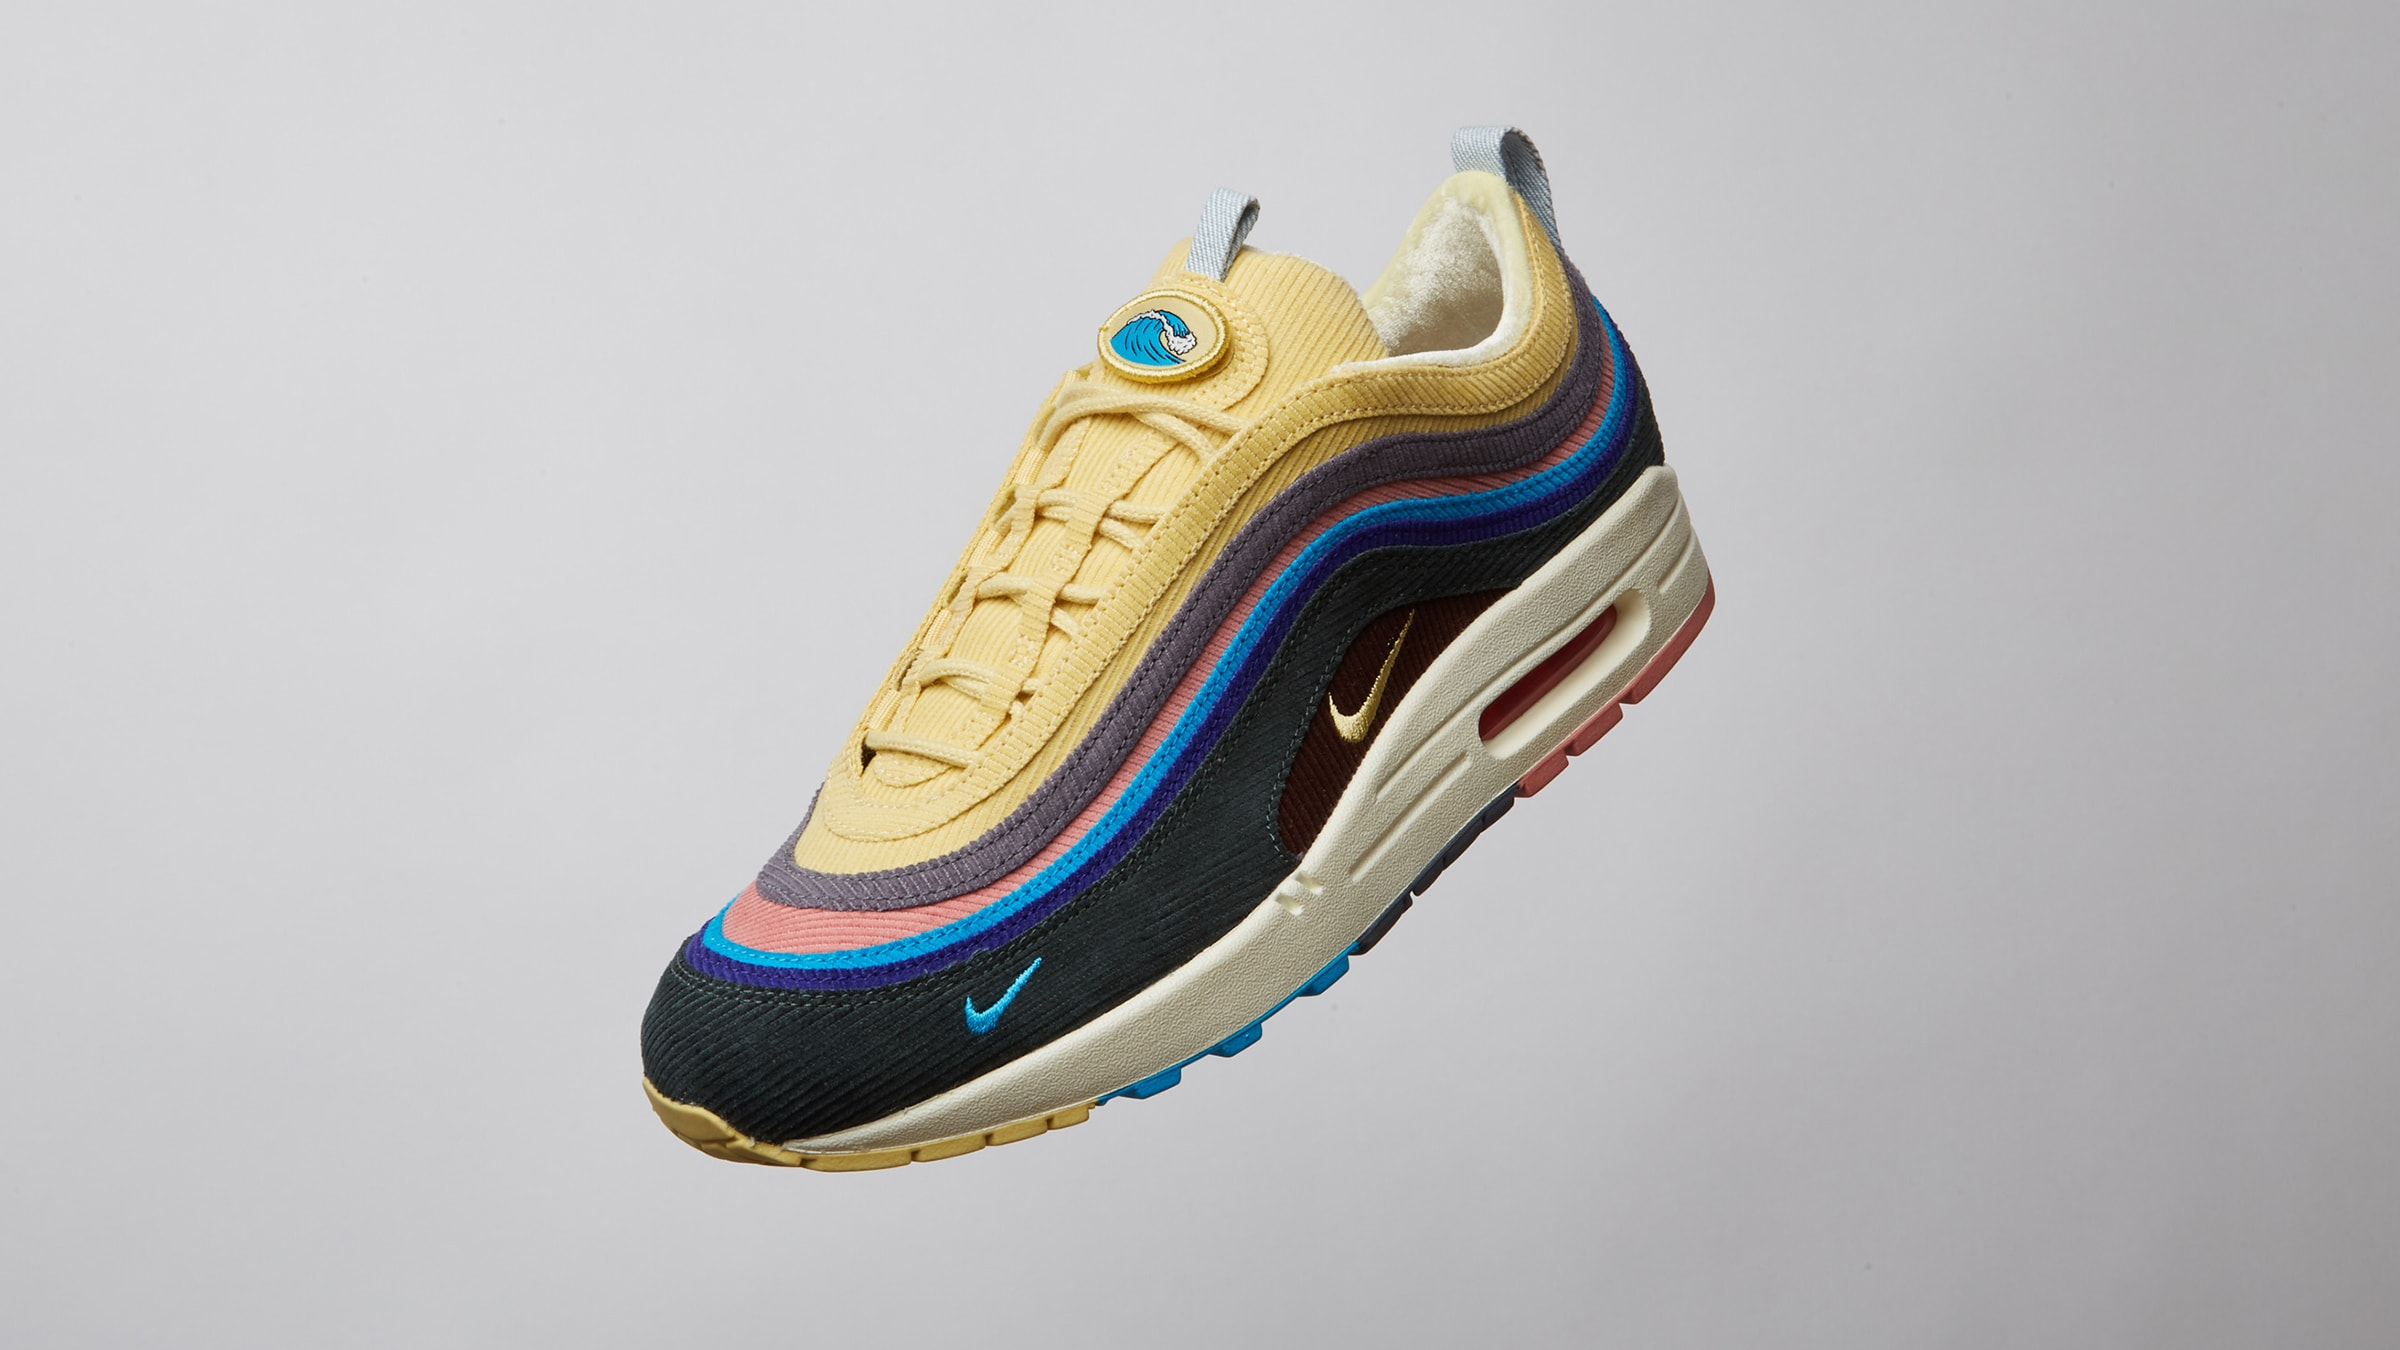 2018 Sean Wotherspoon x Nike Air Max 1/97 Light Blue Fury